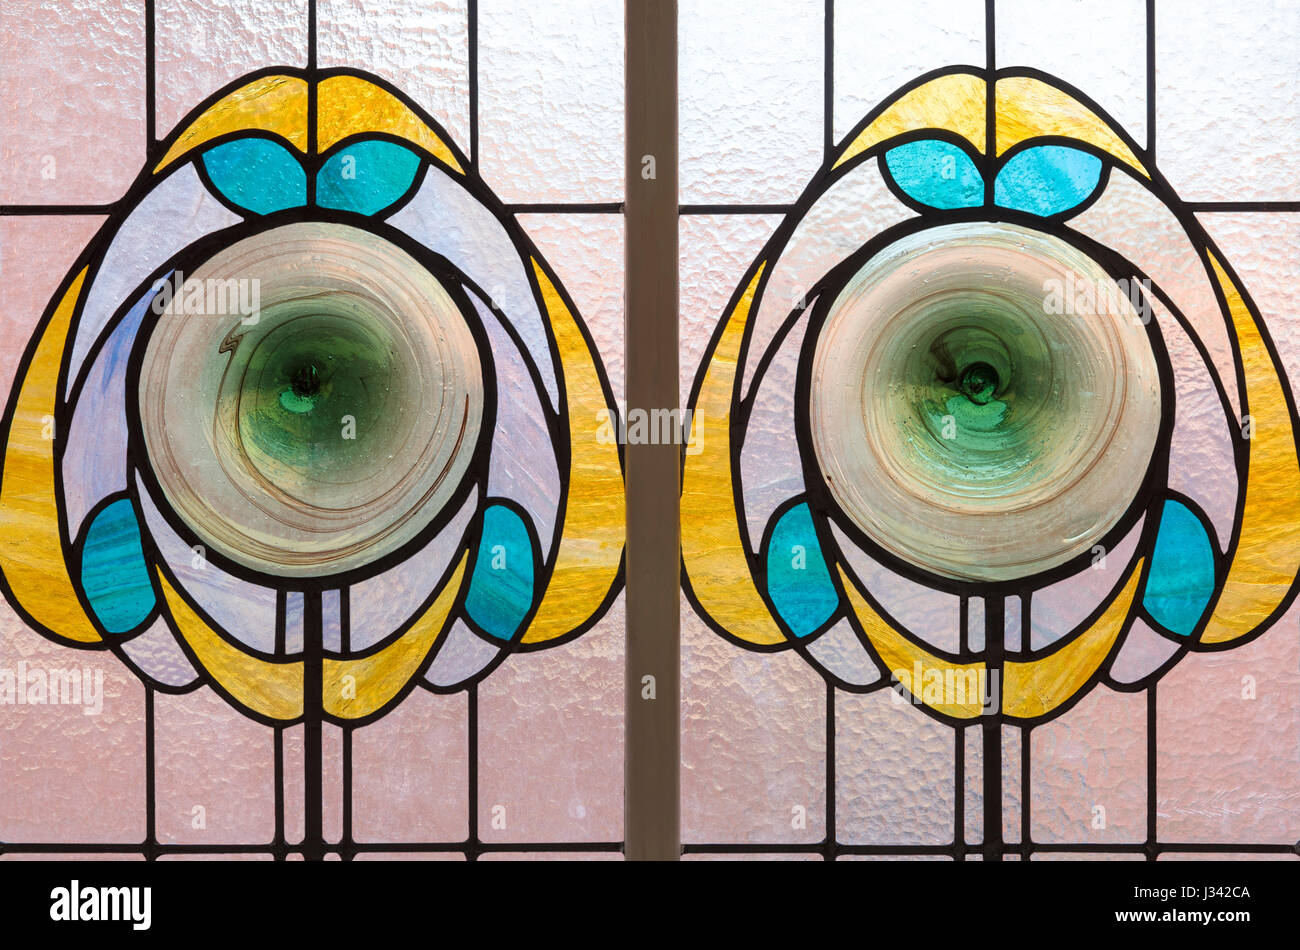 Stylised flowers depicted in stained glass, Victoria Baths, Manchester, England. - Stock Image